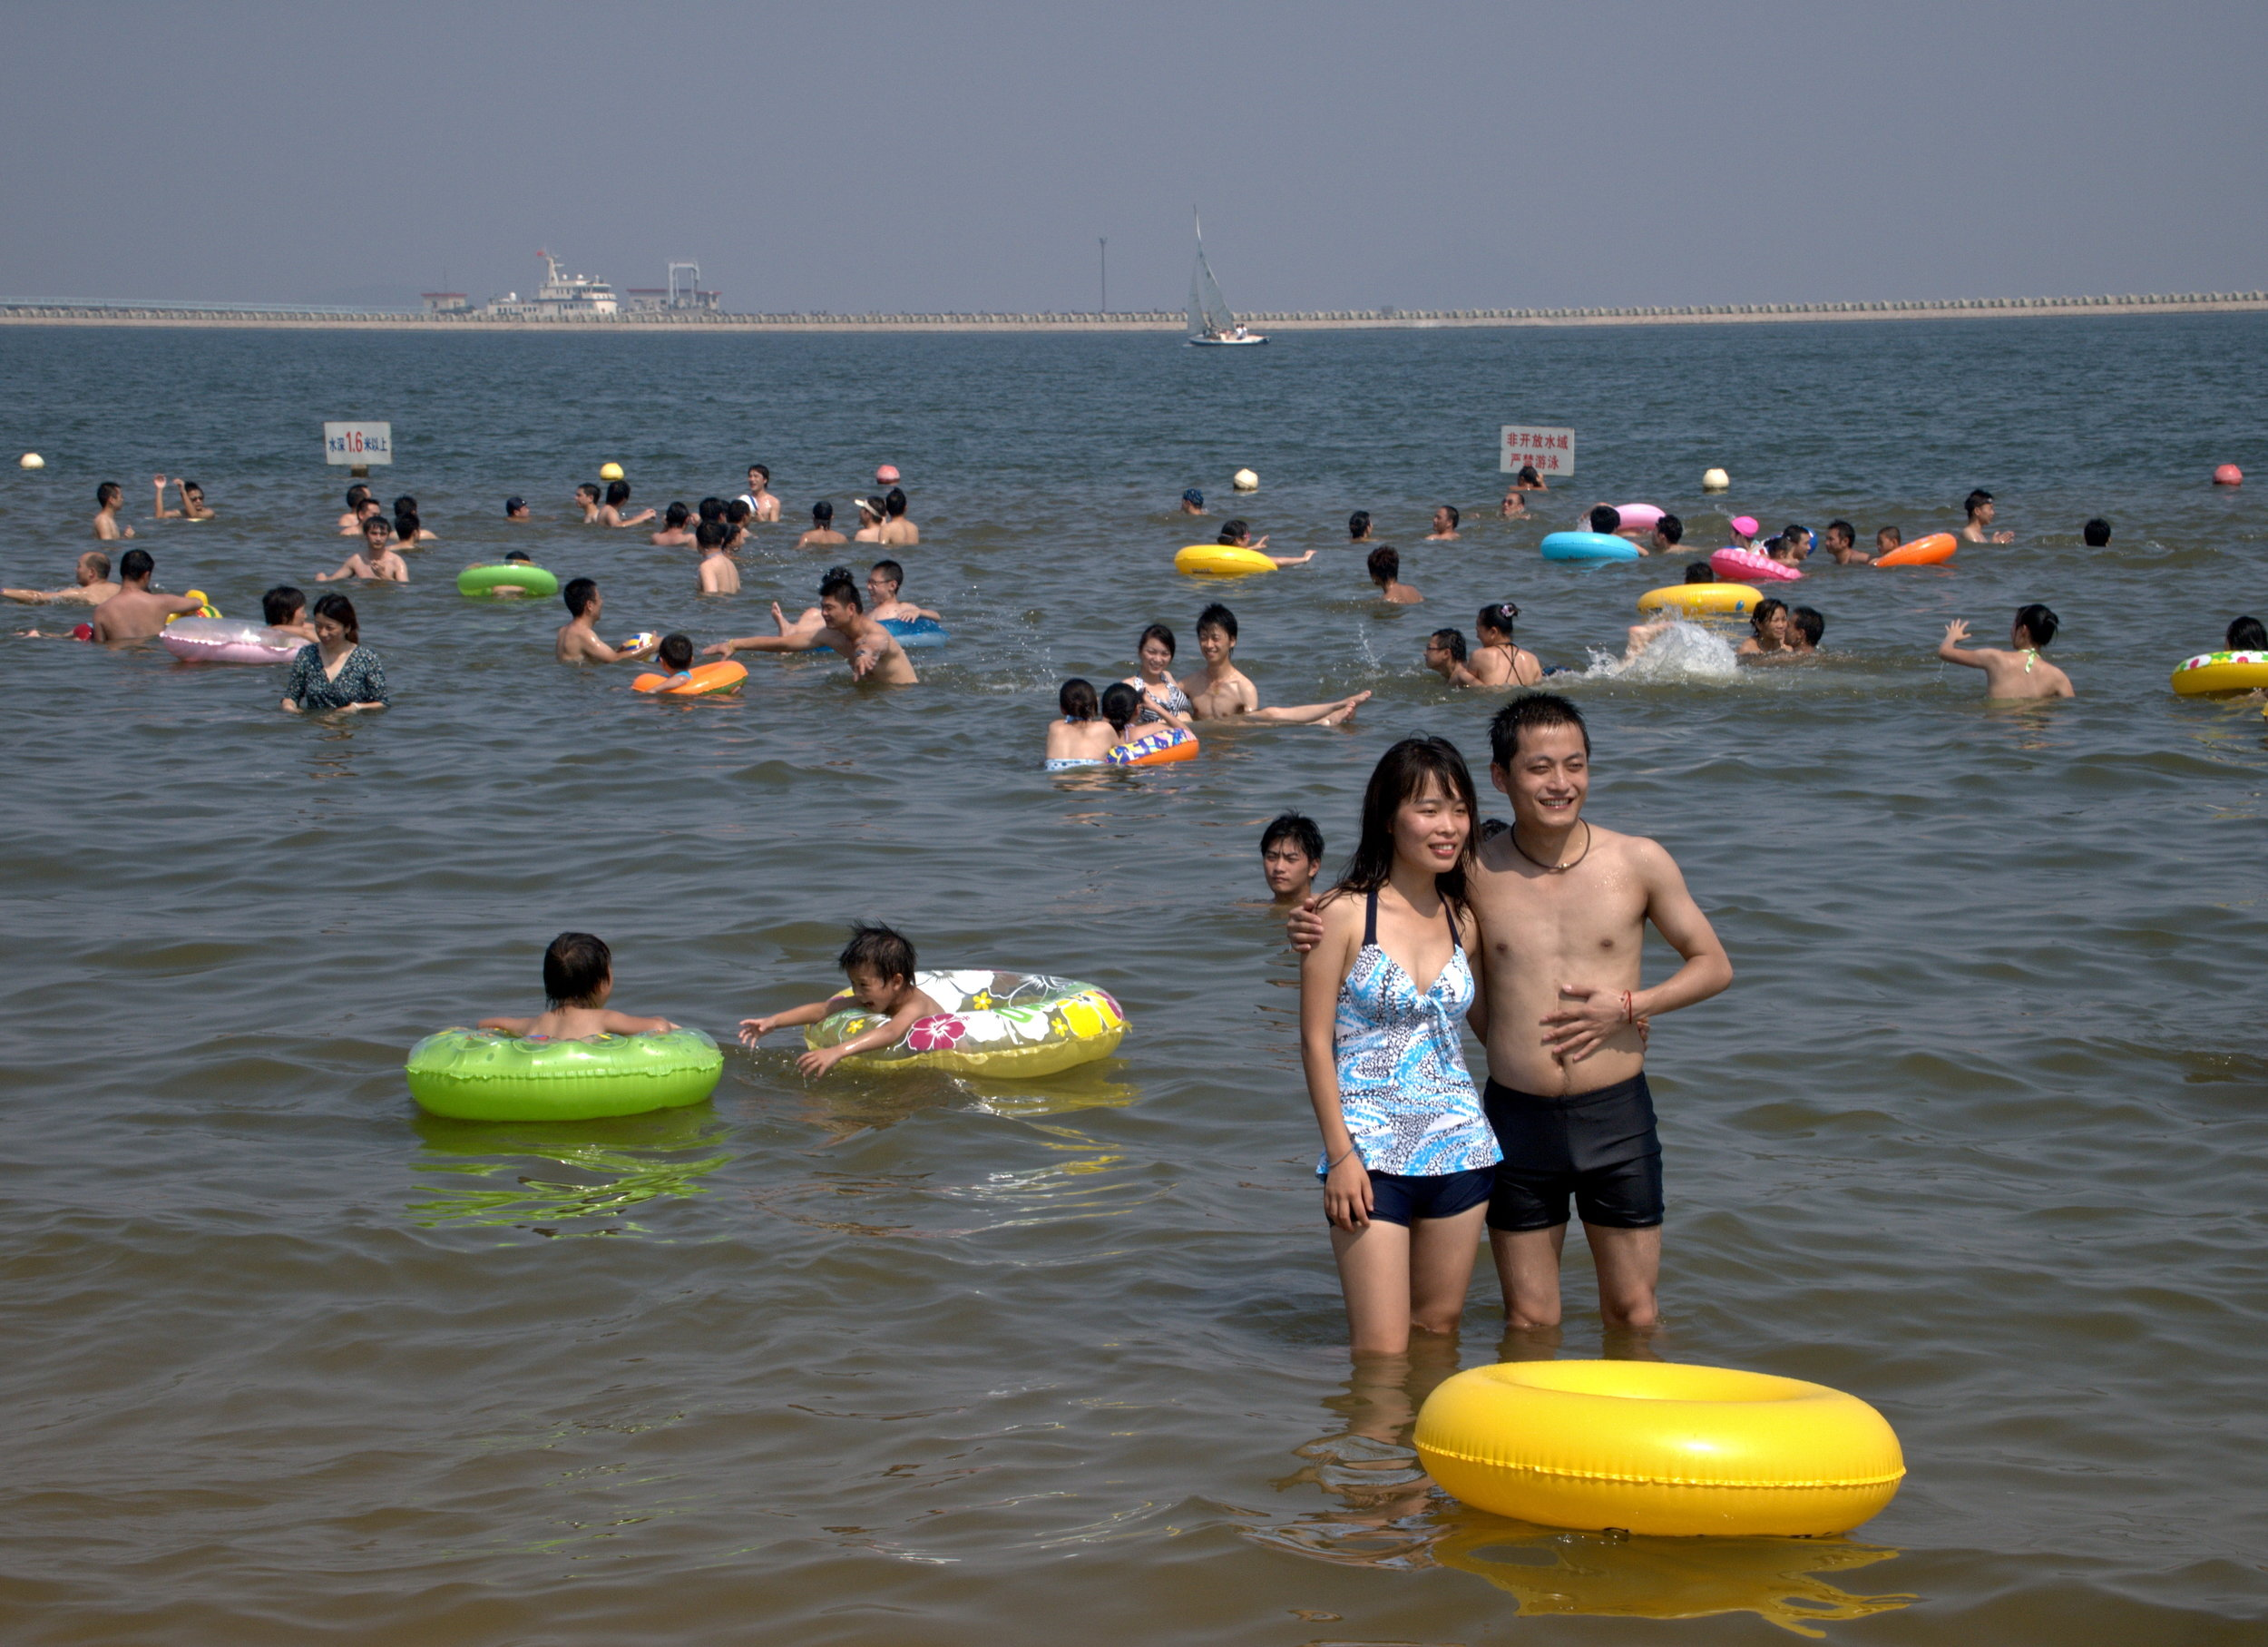 People in the swim section of the Hangzhou Bay at Jinshan City Beach, Shanghai, China. Photo: (C) Remko Tanis